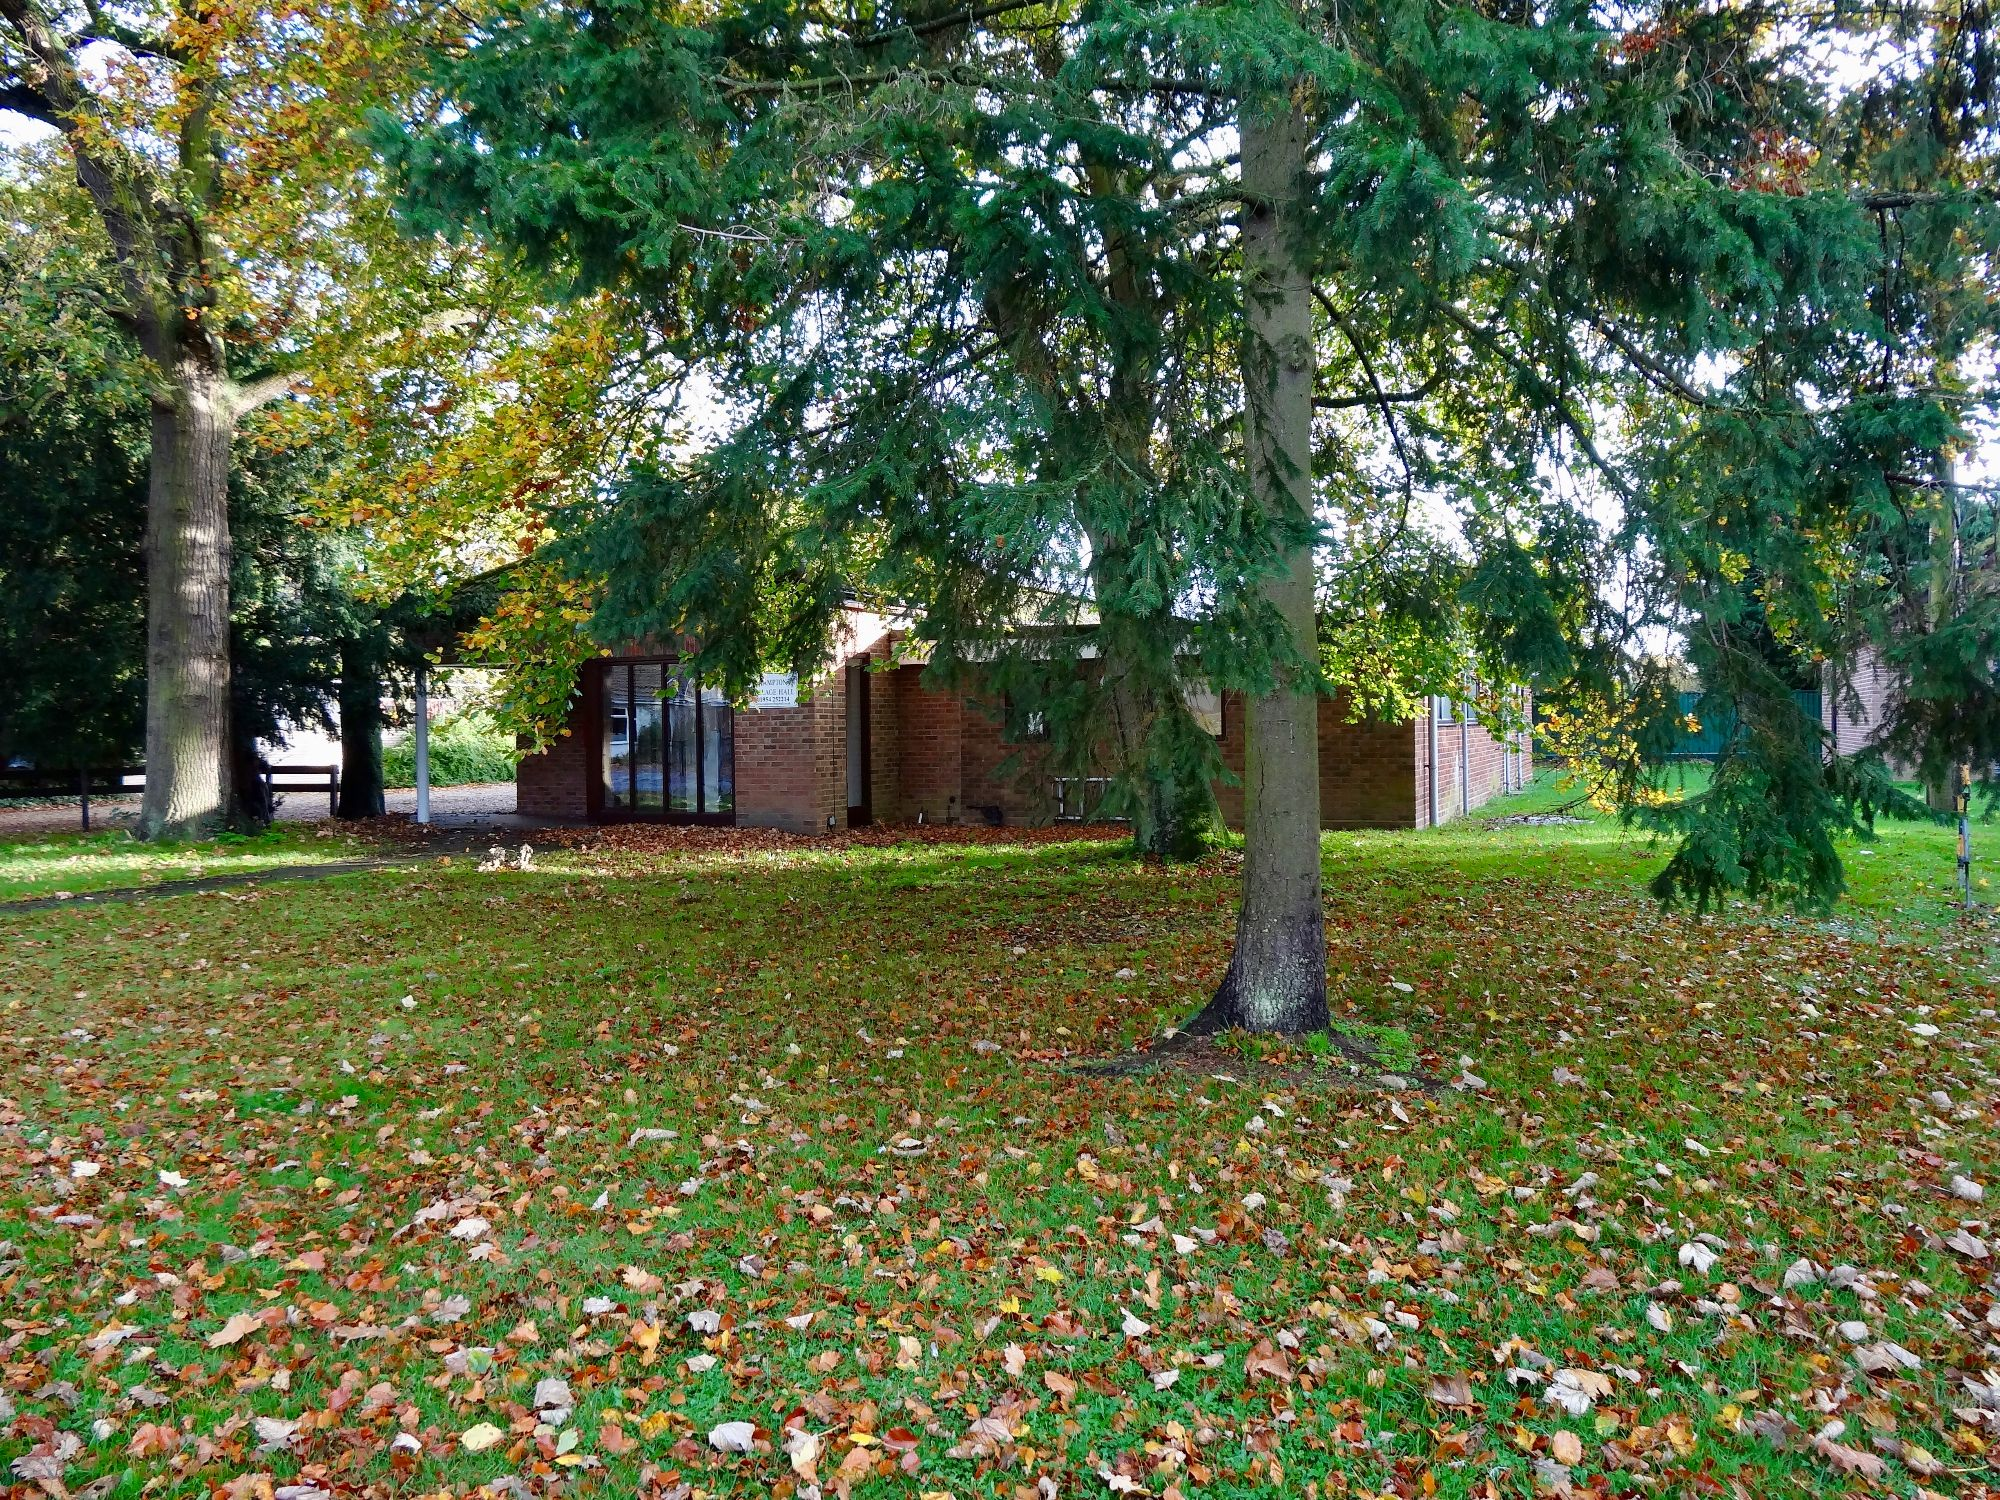 JEP hall front and side grass Nov 2020.jpg